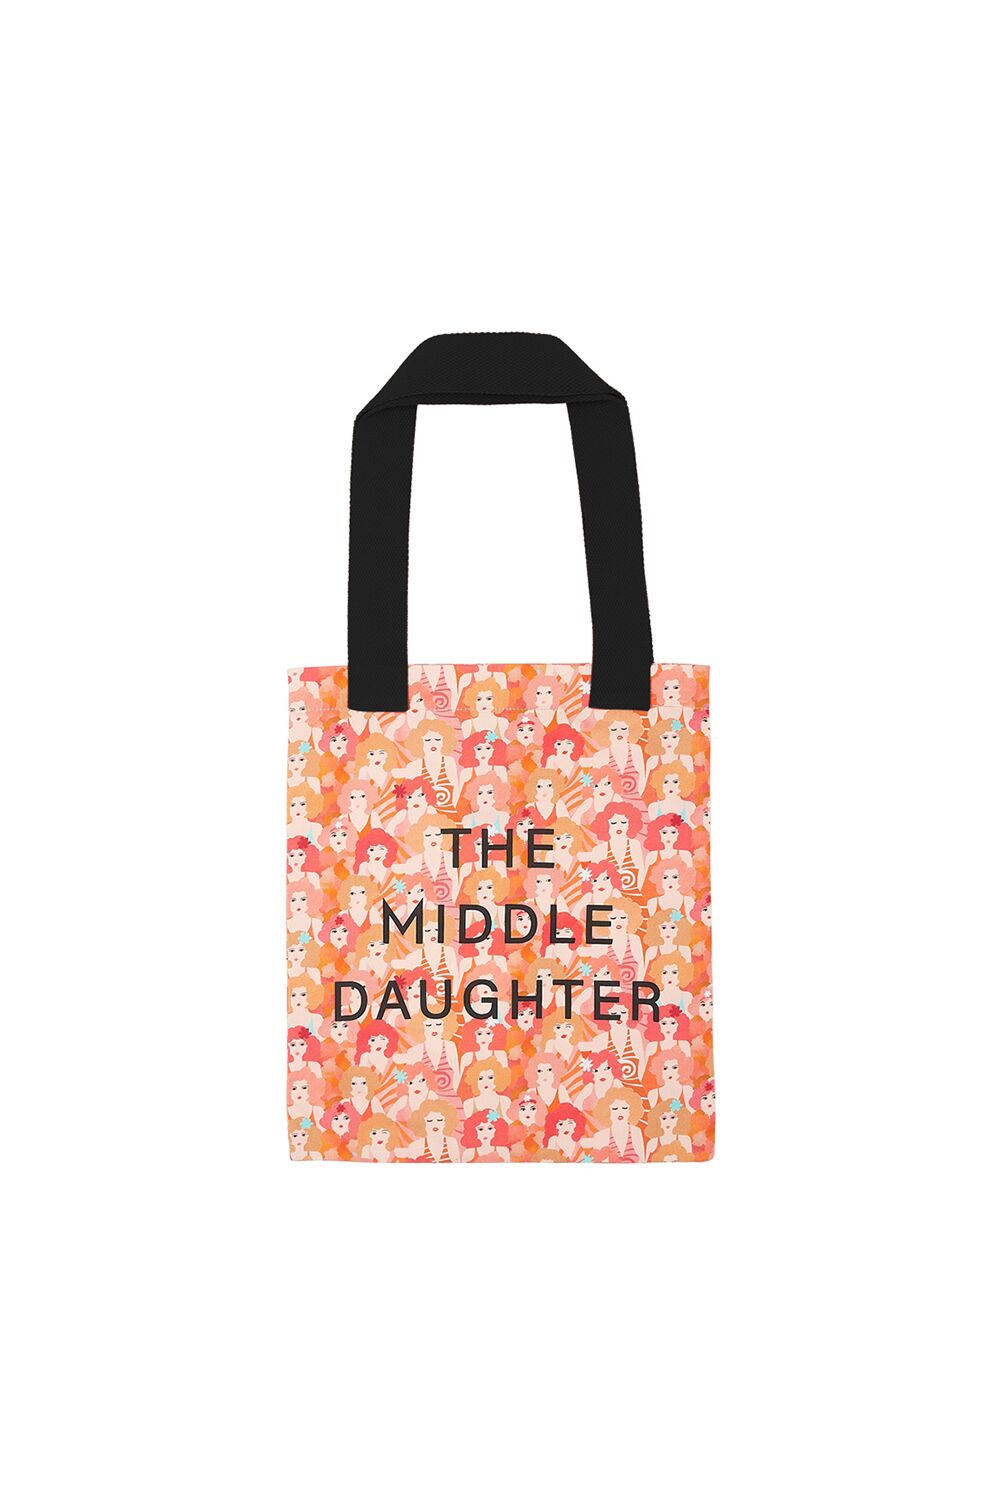 YOU'RE TOTE-ALLY INDISPENSABLE